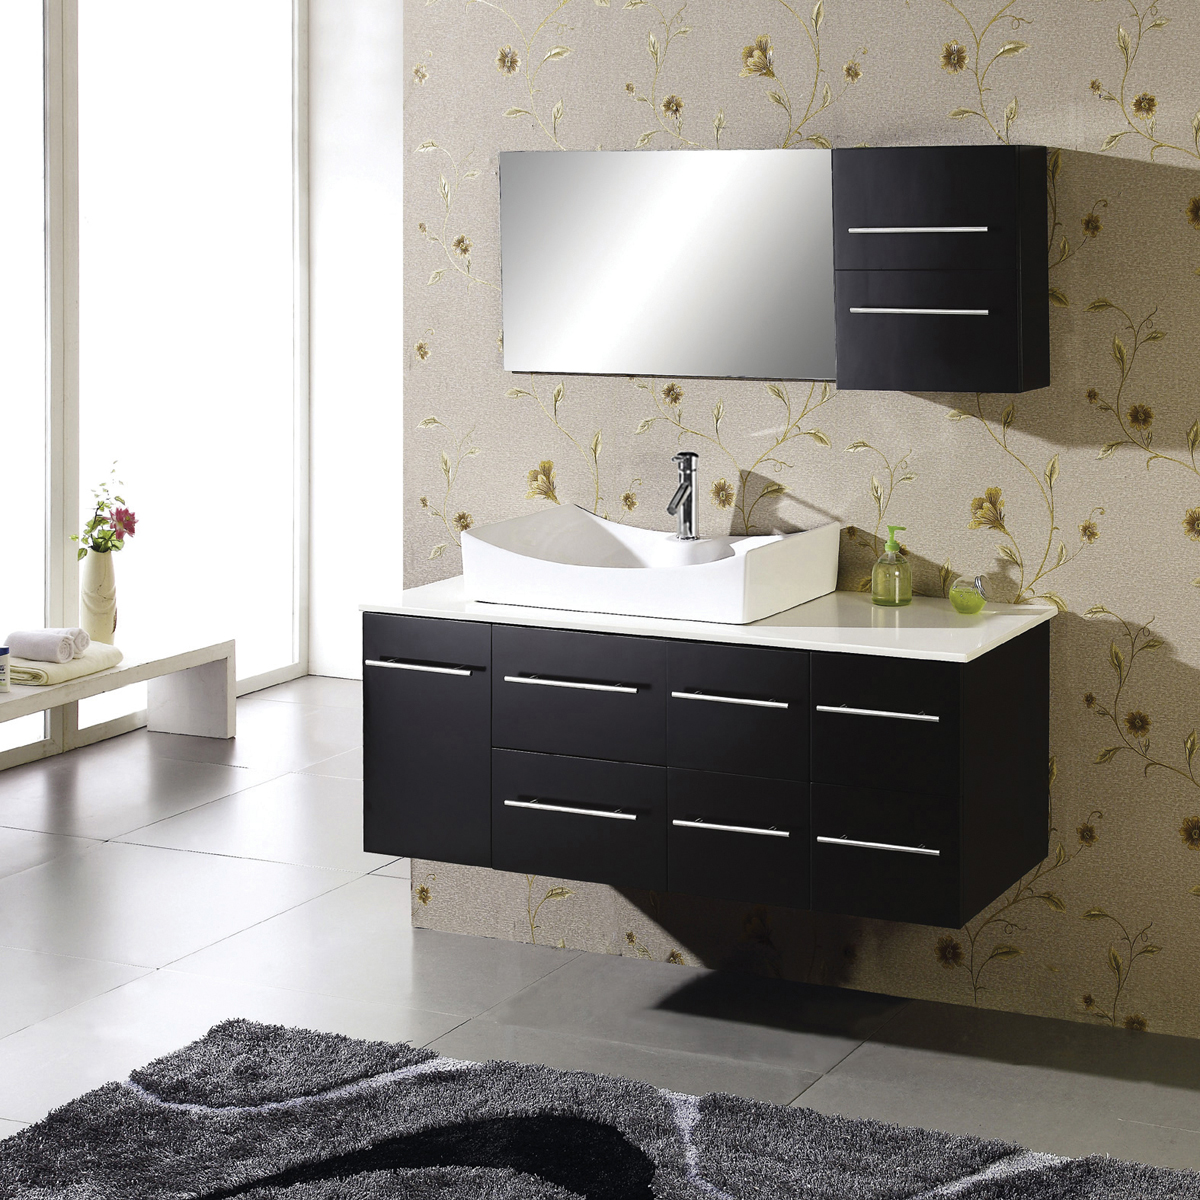 High Quality Astounding Design Of The Black Rugs Added With Grey Floor And Black Floating  Bathroom Vanity